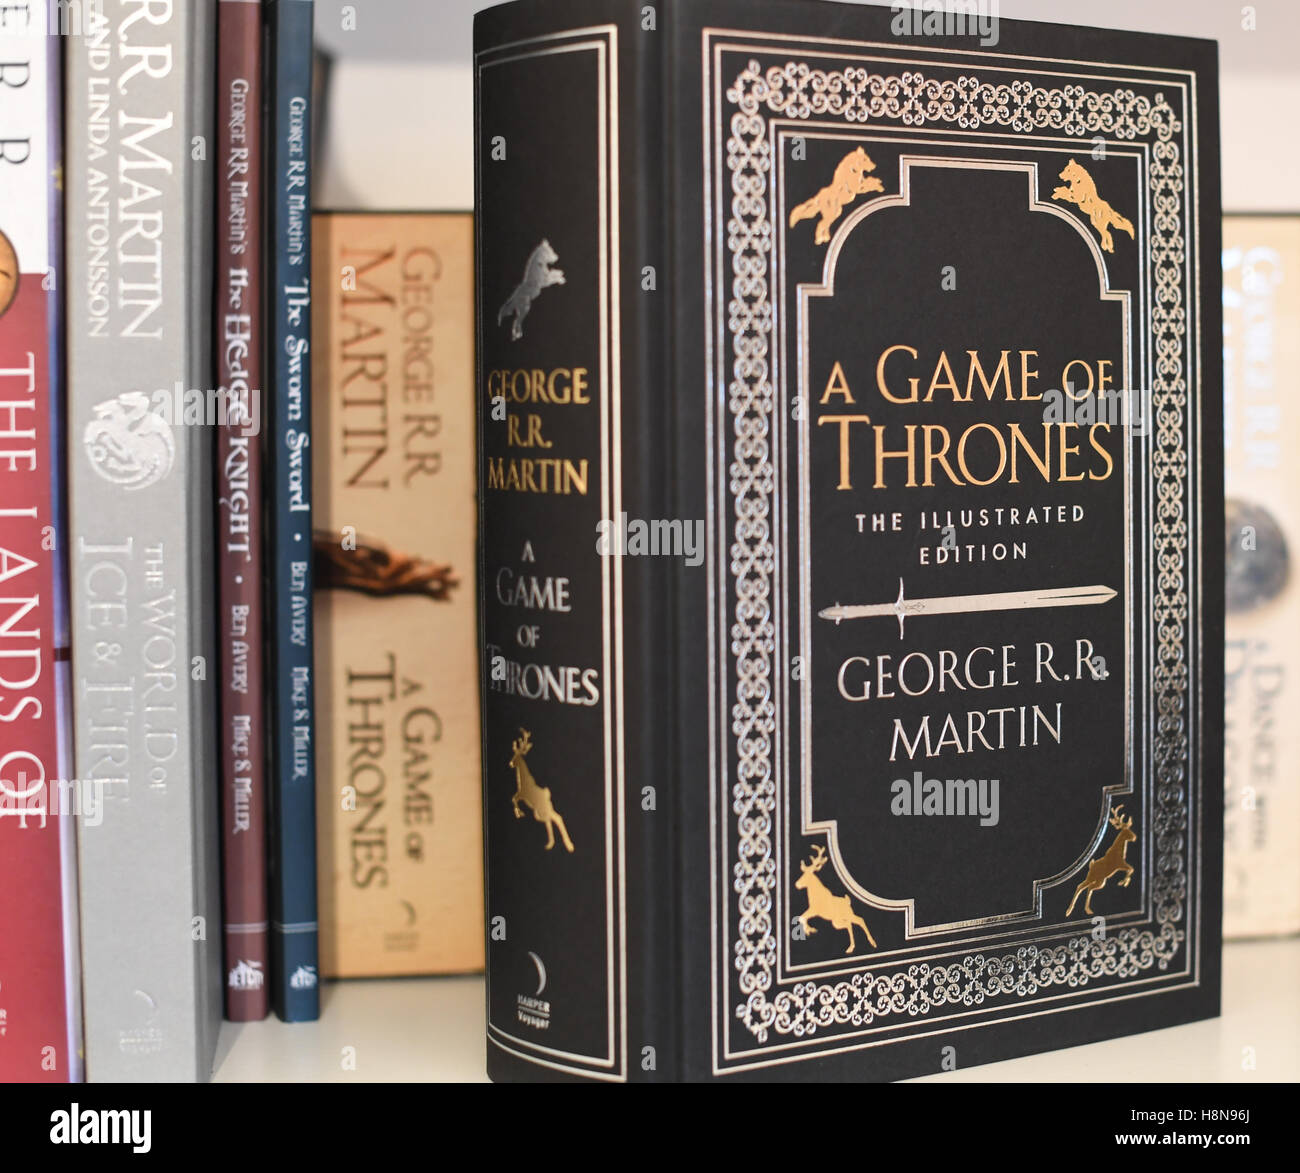 A Game of Thrones book, the first book in the Song of Ice and Fire